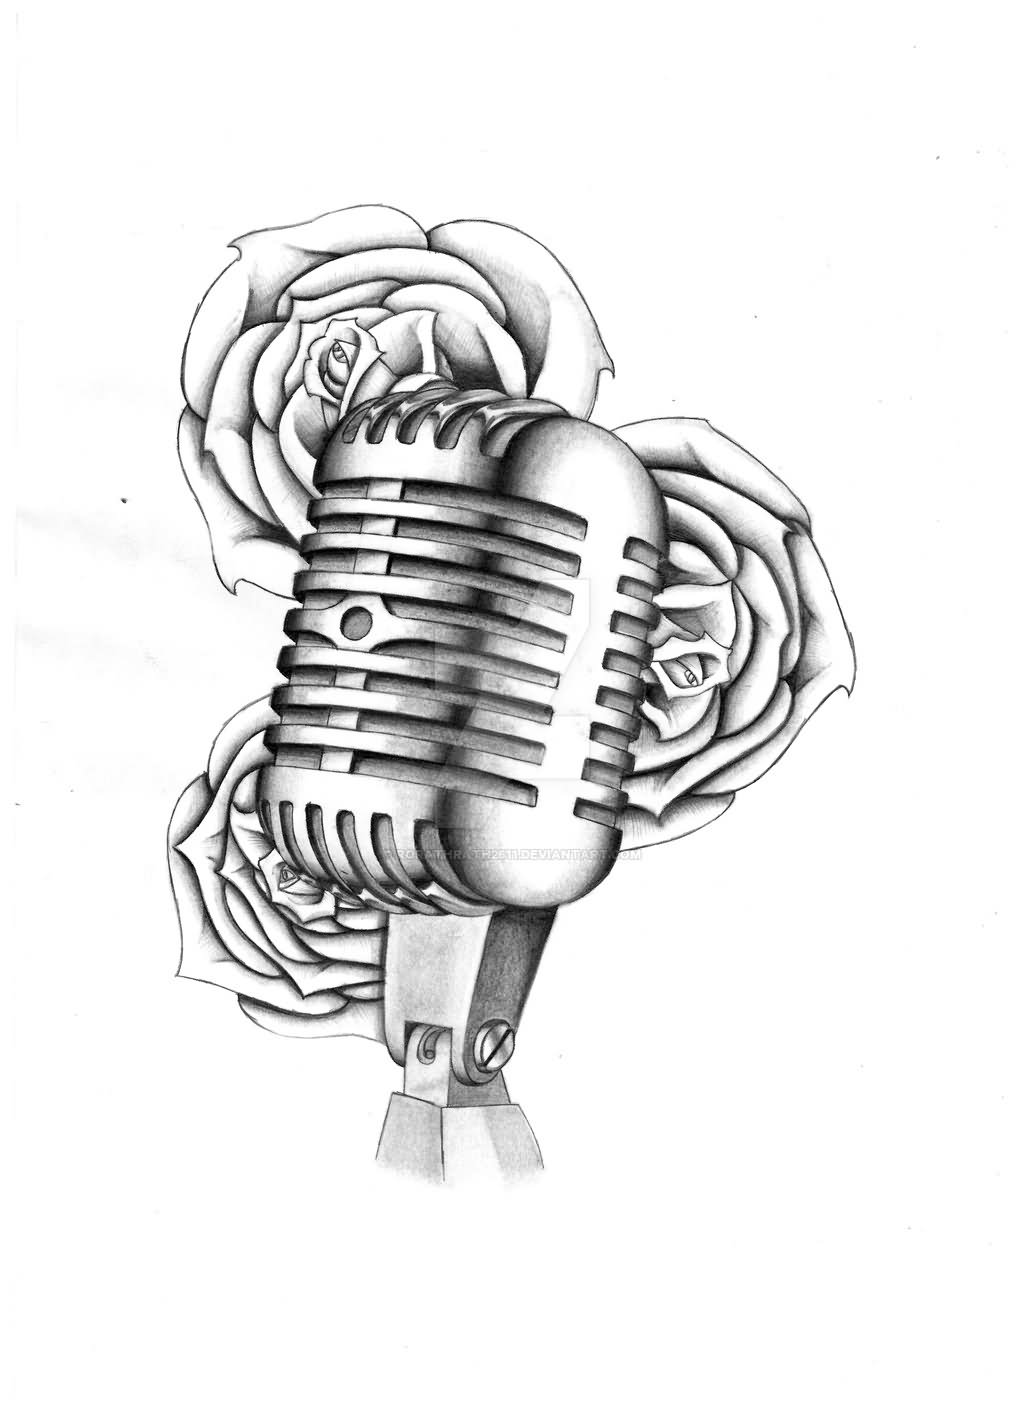 Tattoo Design Line Art : Microphone tattoo drawings